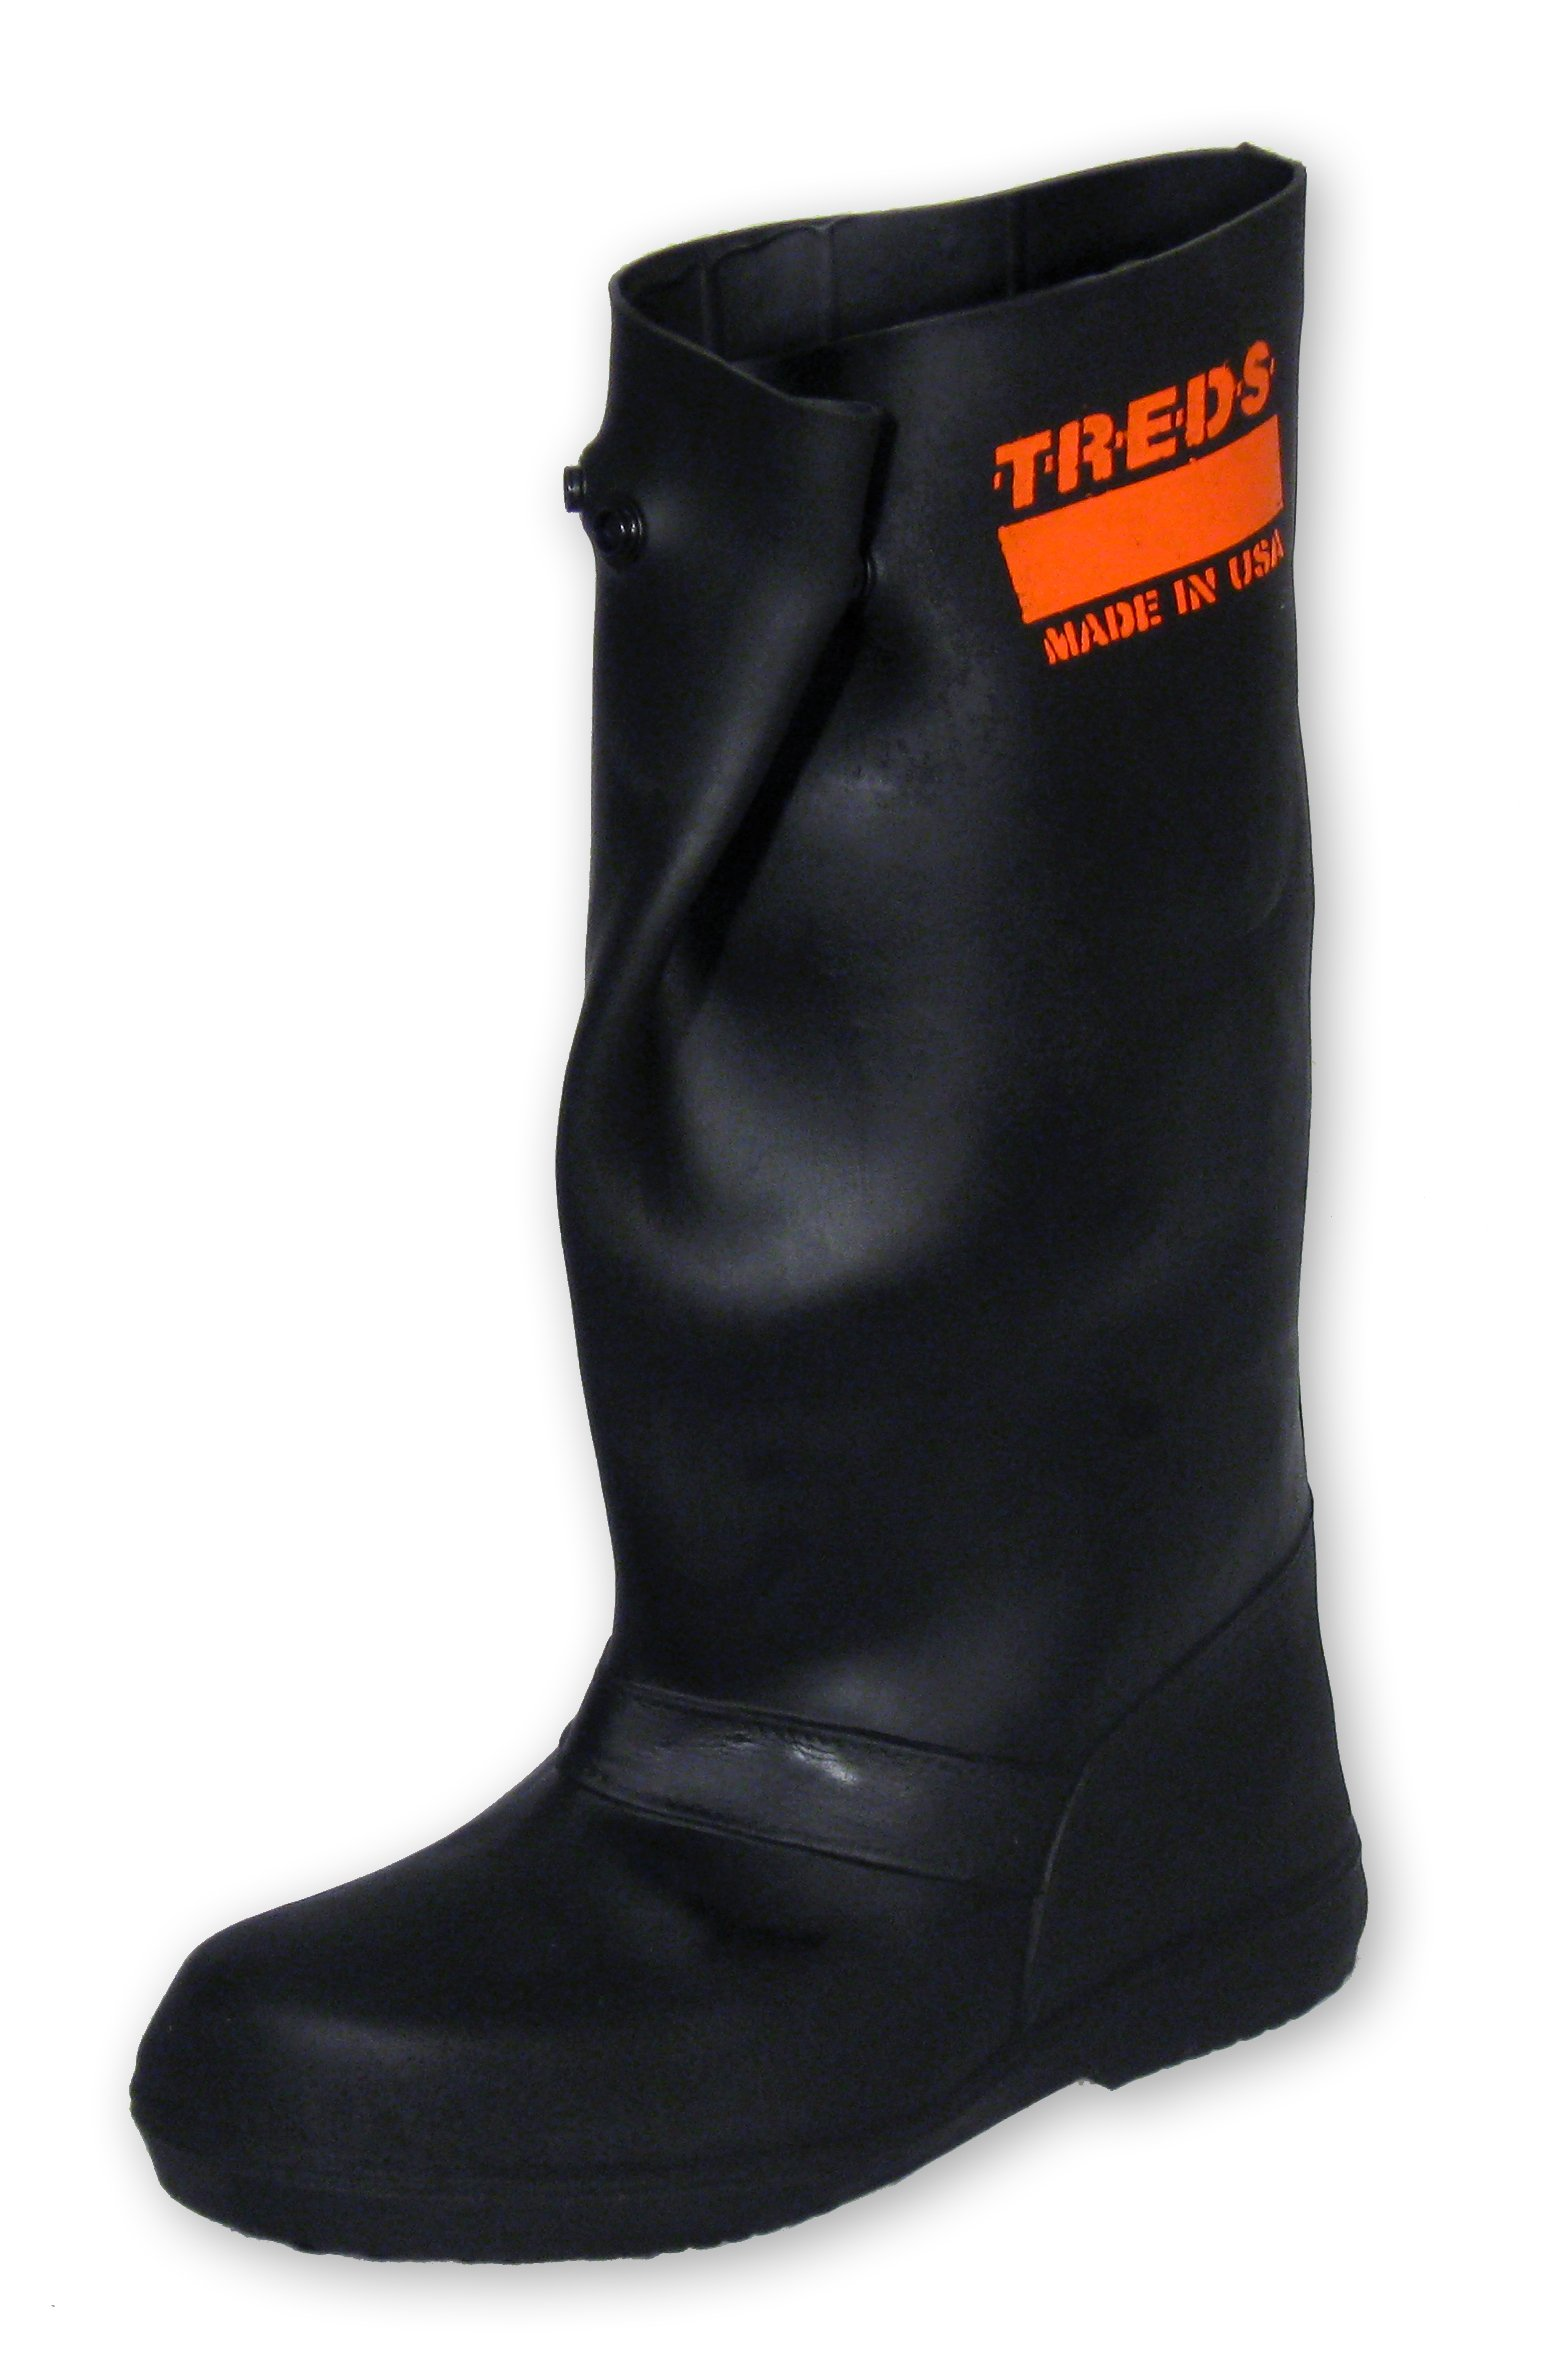 TREDS Super Tough 17'' Pull-On Stretch Rubber Overboots for Rain, Slush, Snow and Construction, Size Medium by Treds